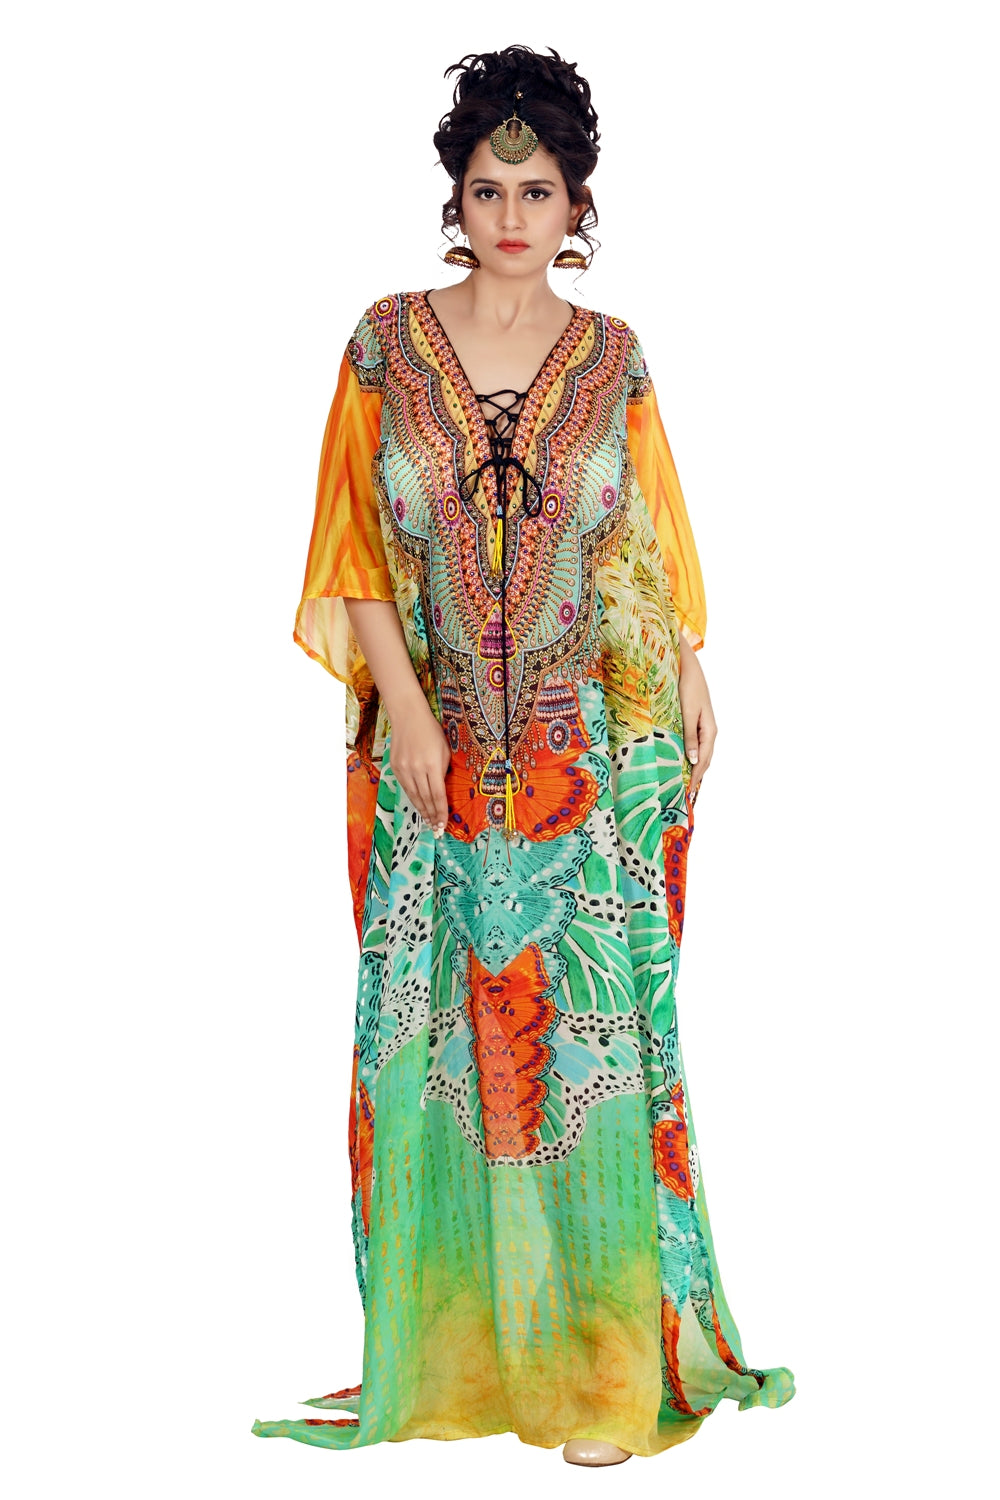 Happening Silk kaftan with bright look and laced up V neck beach wear embellished kaftan - Silk kaftan